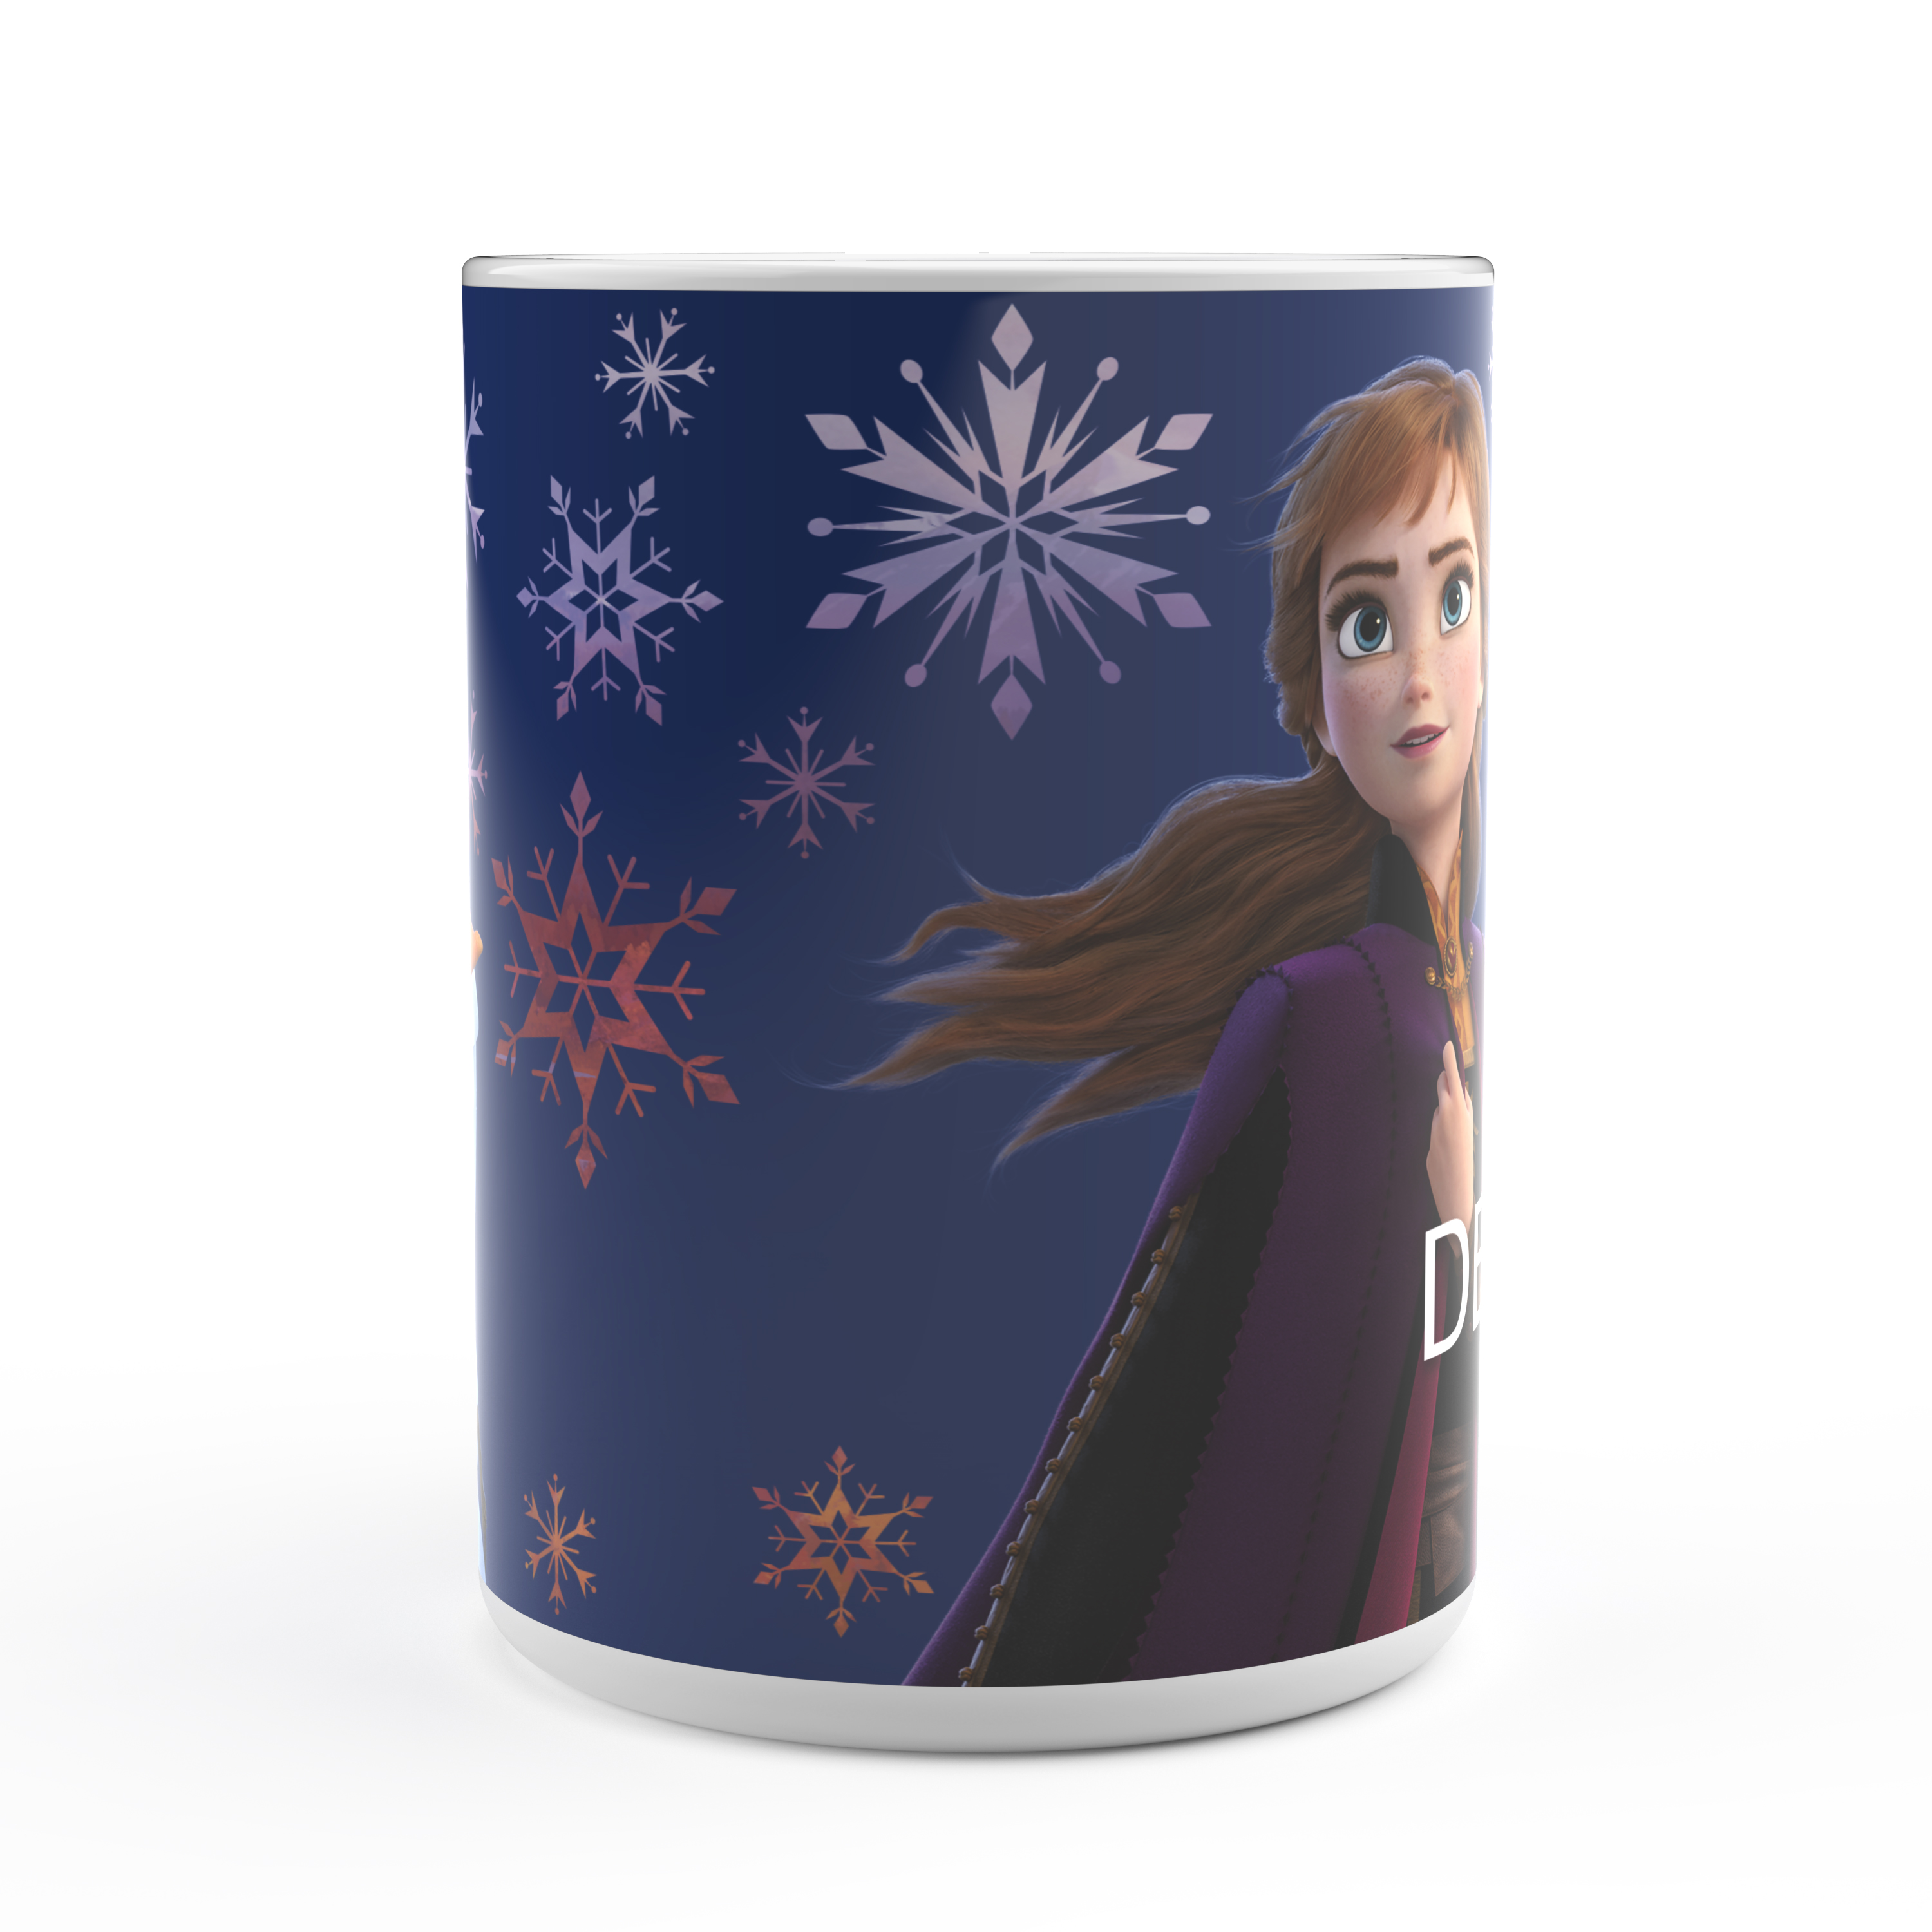 Disney Frozen 2 Movie 15 ounce Coffee Mug and Spoon, Anna, Elsa & Olaf slideshow image 4